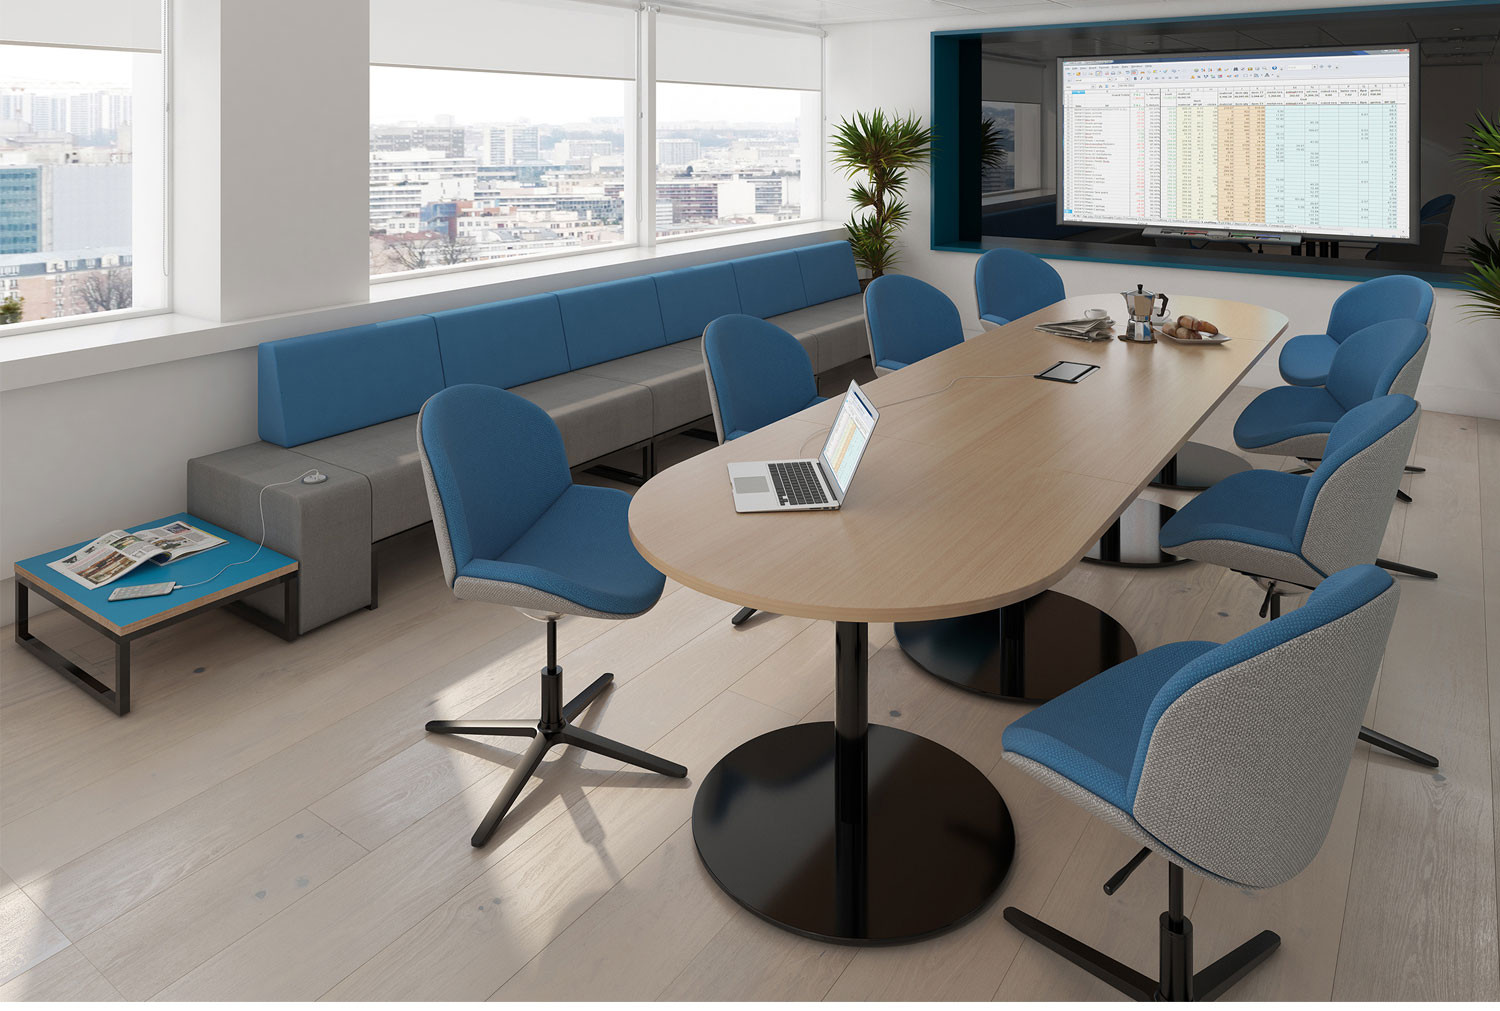 Groovy Constant Radial End Boardroom Table Interior Design Ideas Clesiryabchikinfo